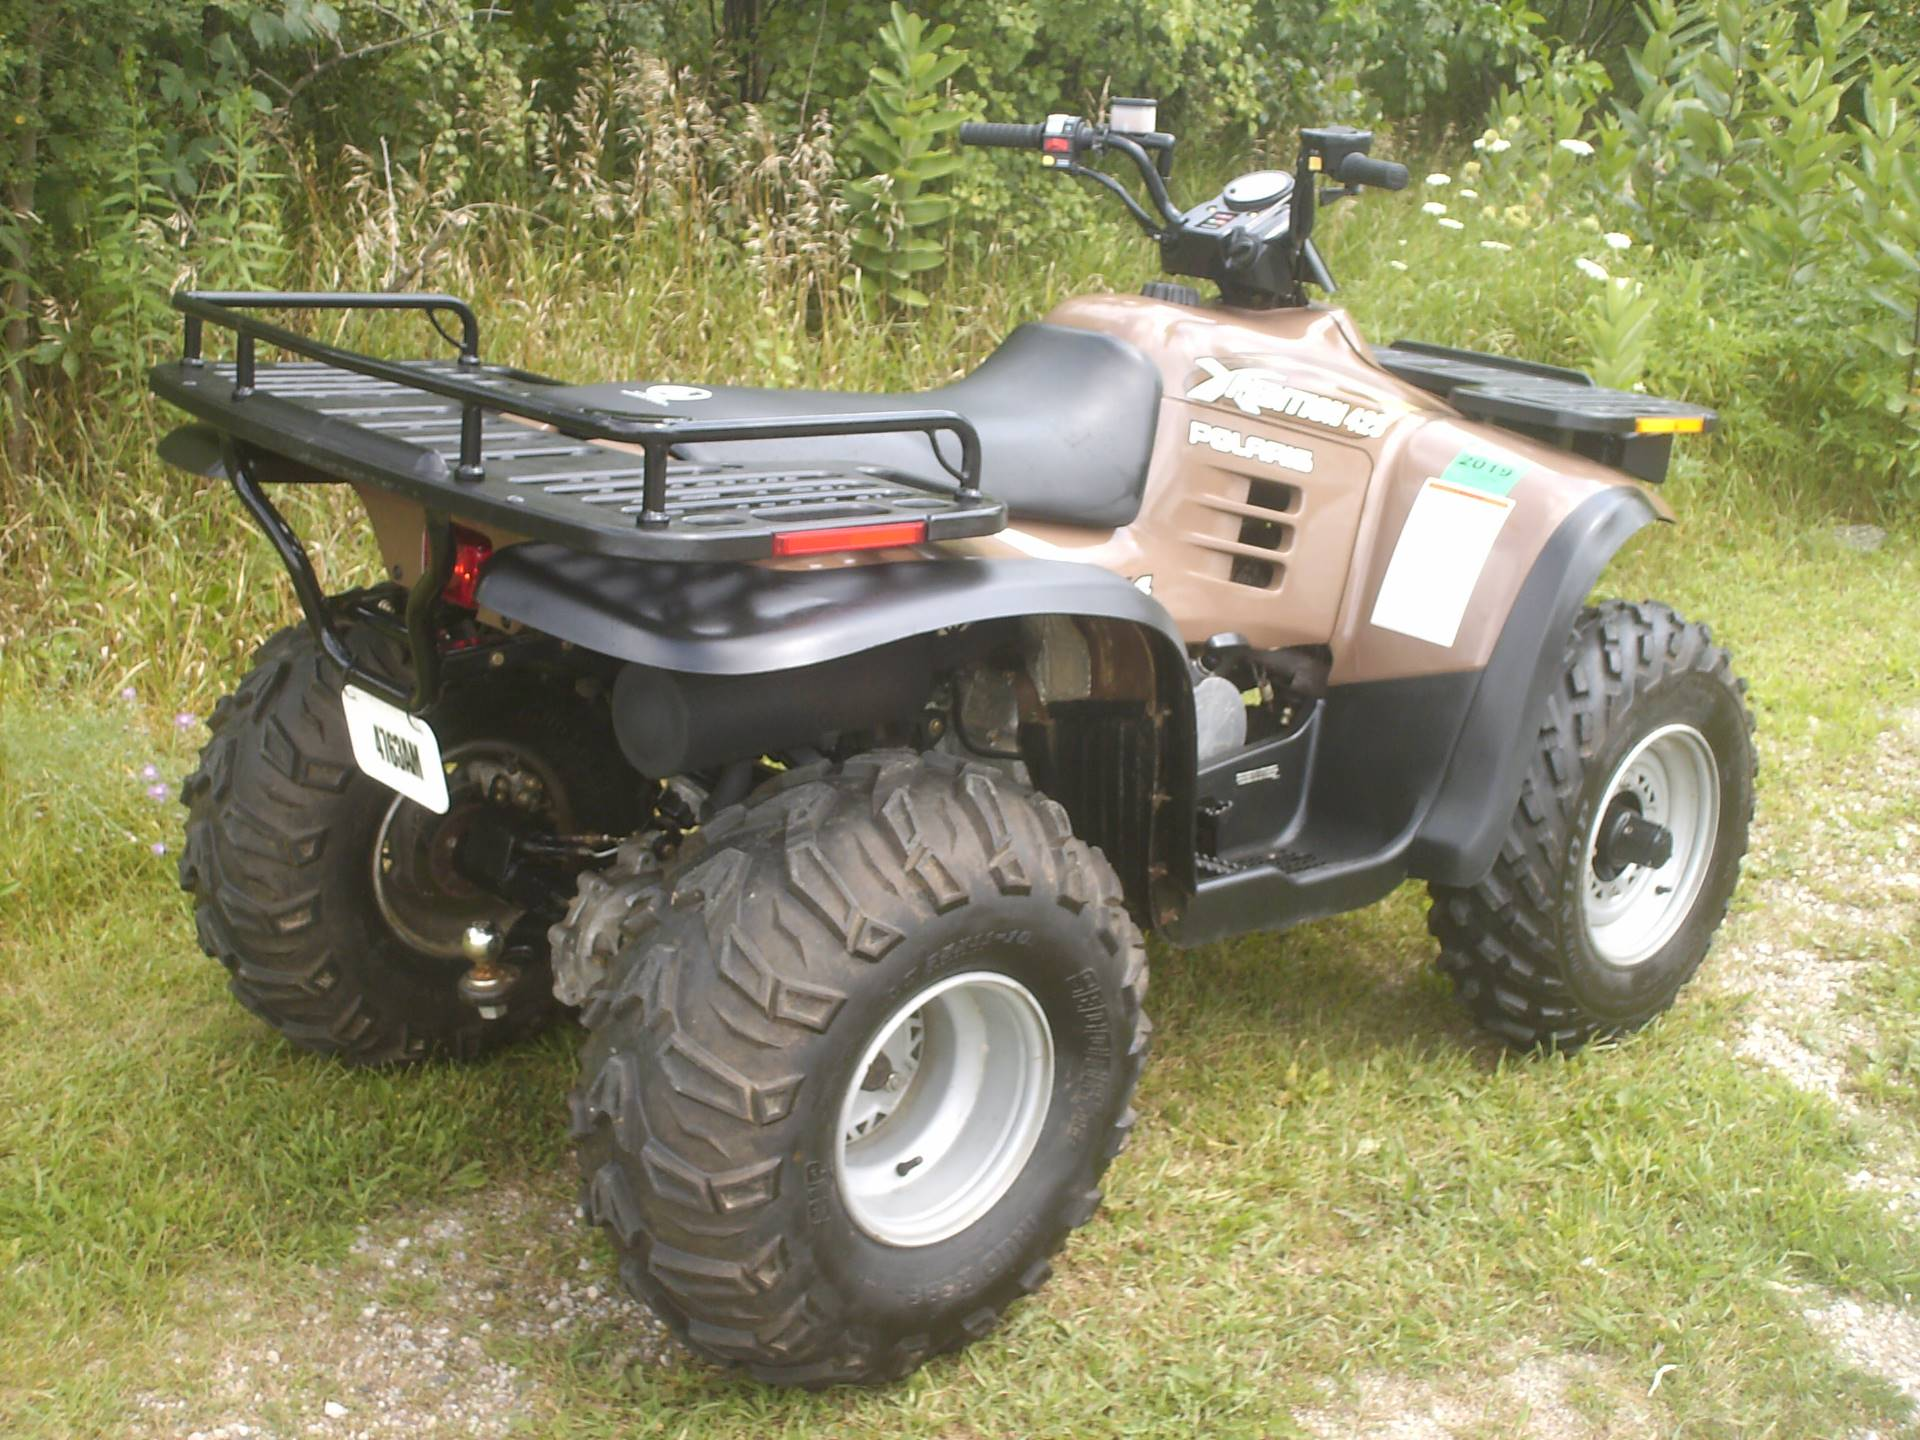 Wiring Diagram For 97 Polaris 425 Magnum Manual Guide 2000 Xpedition Sportsman 500 1995